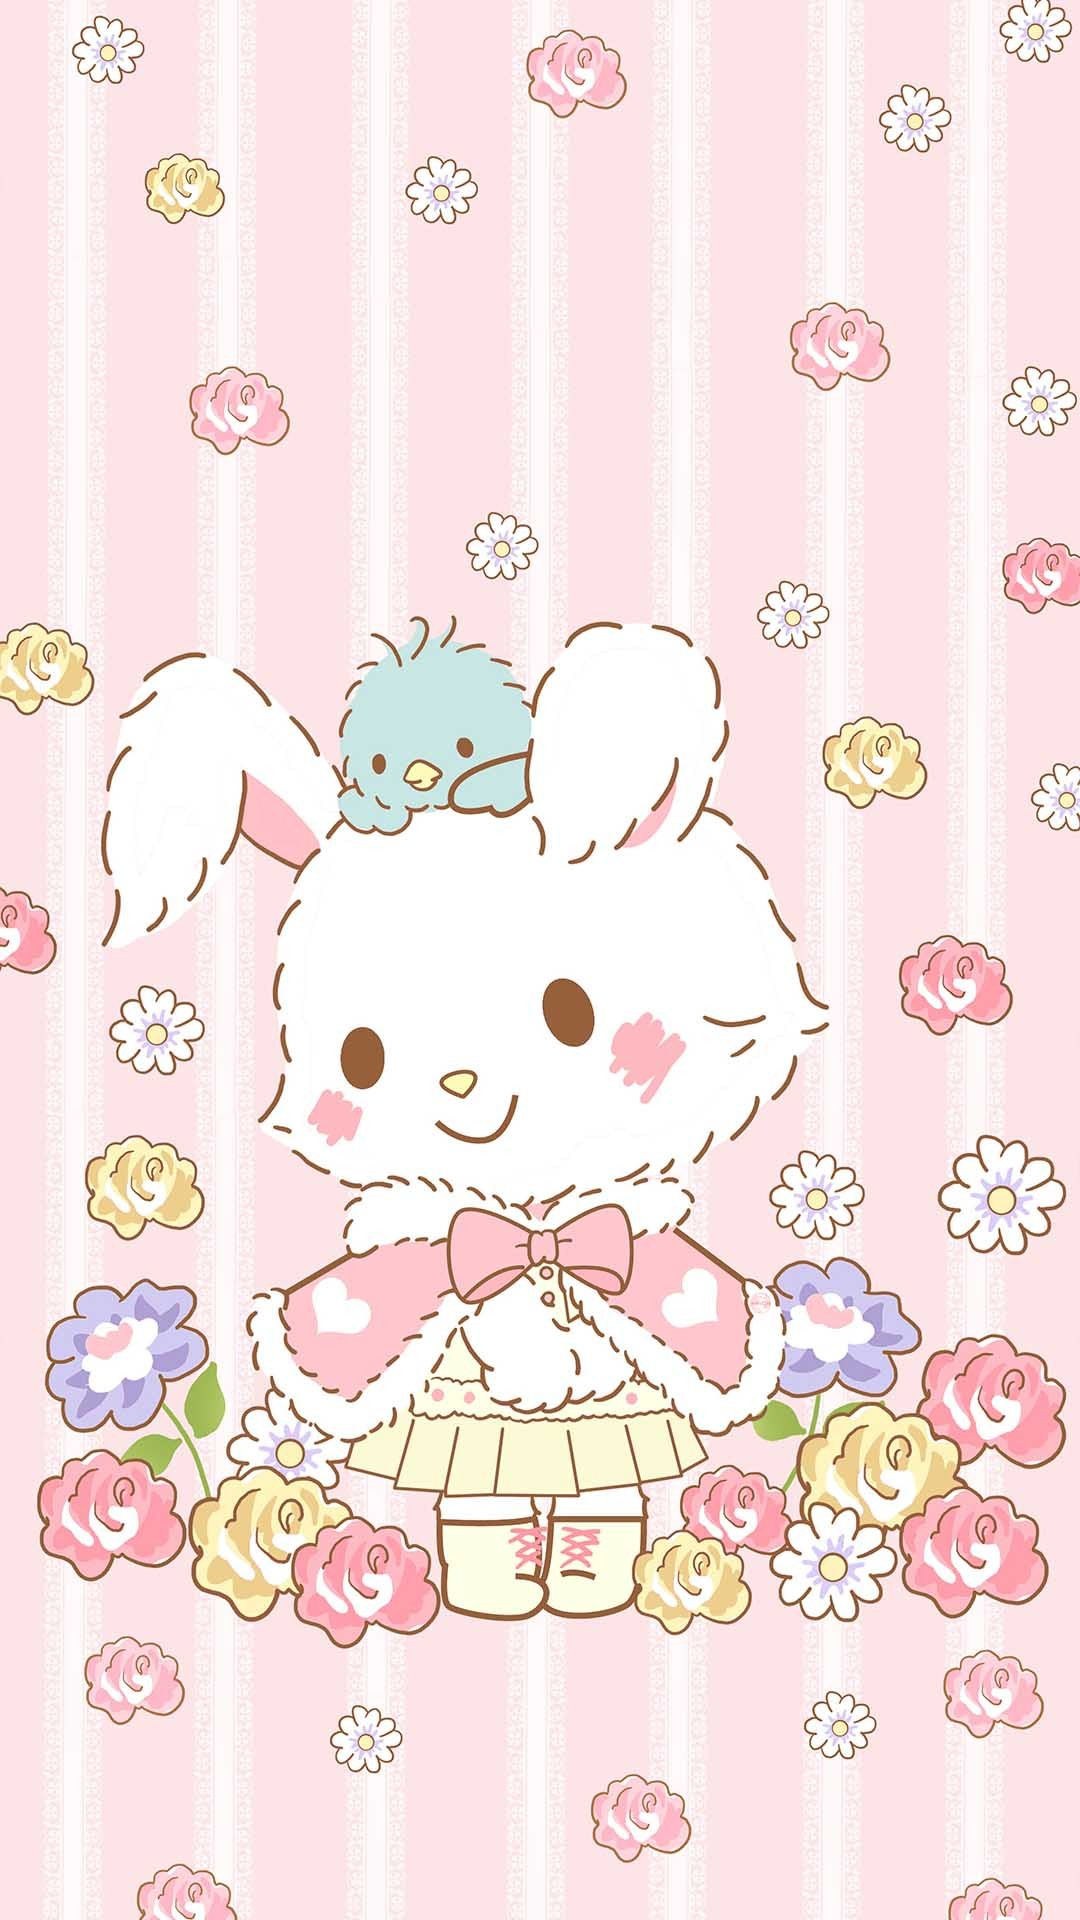 Cute Kitty Wallpapers Download Sanrio Pom Pom Purin And Macaron Wallpaper 183 ①